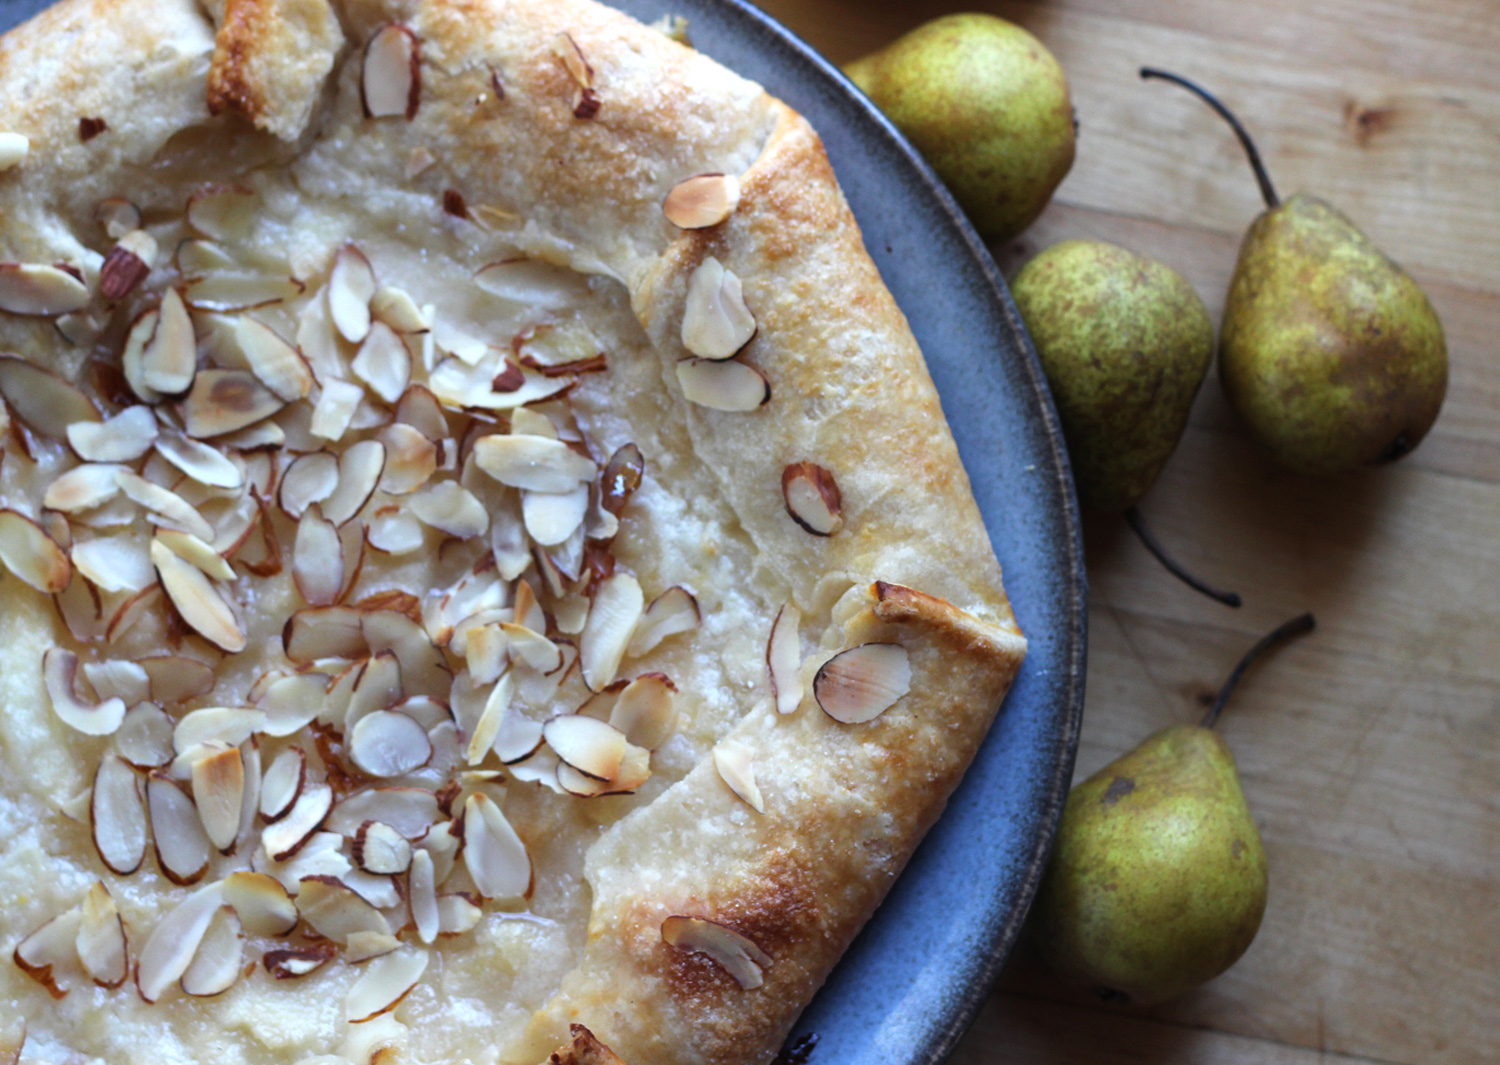 Rustic Pear Tart with Goat Cheese & Brown Butter Crust